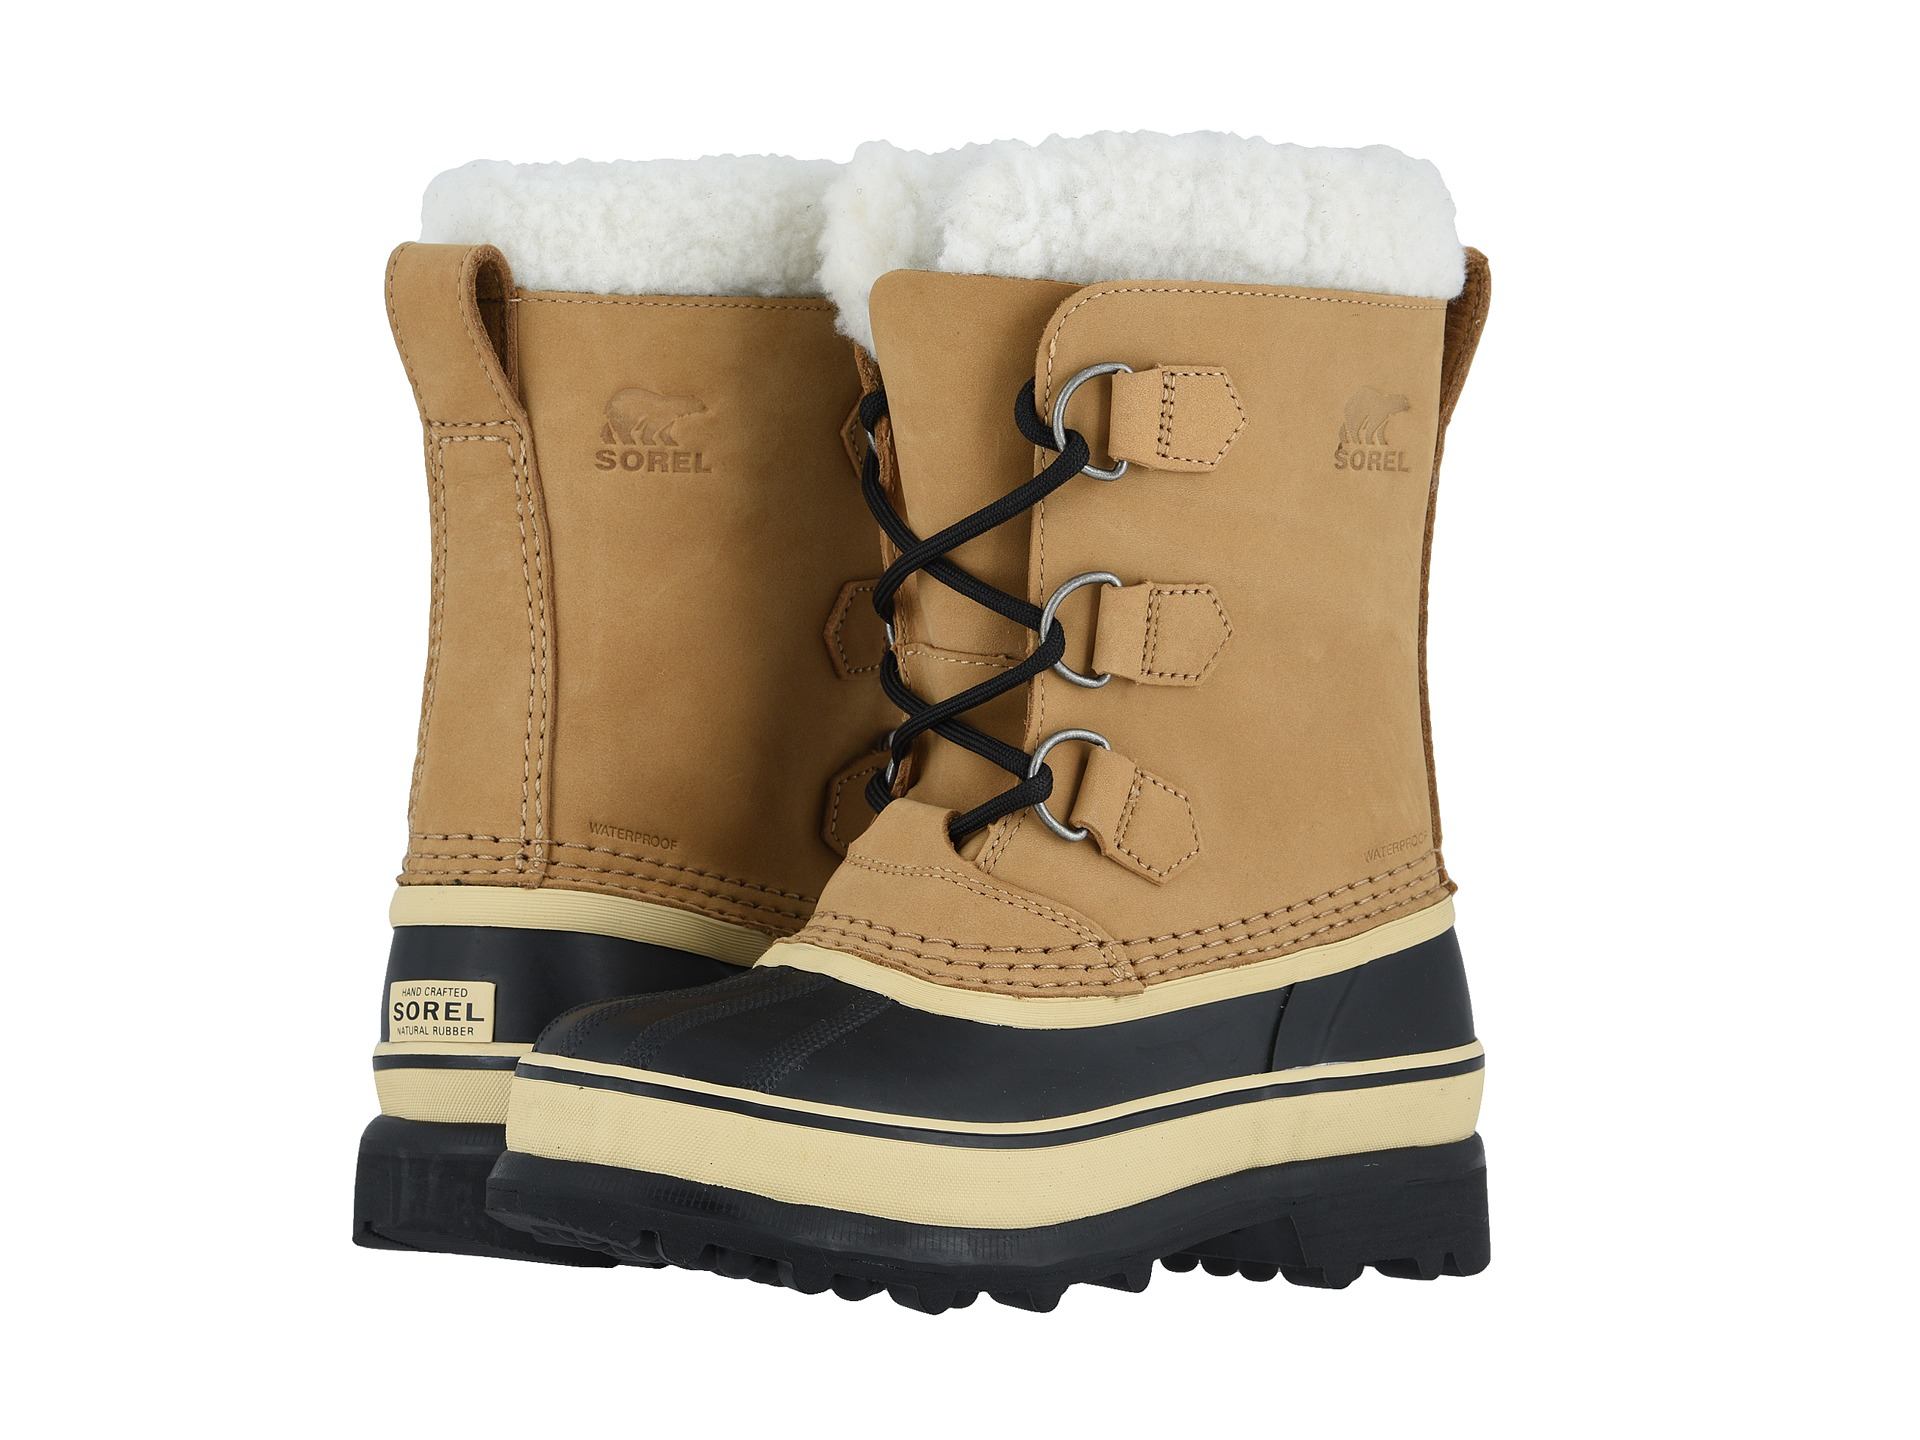 Boots, Snow Boots, Boys | Shipped Free at Zappos